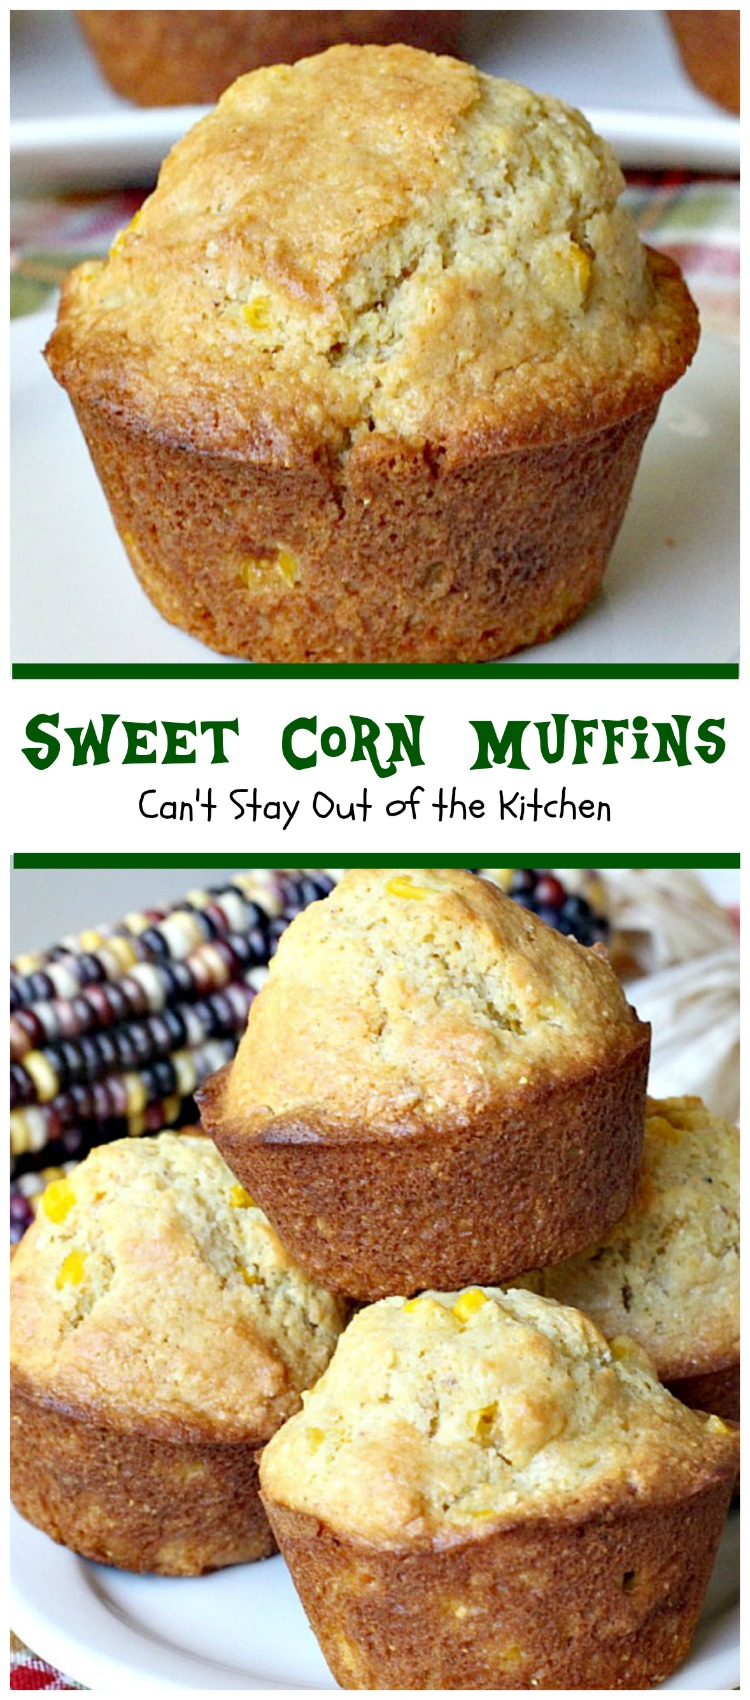 Sweet Corn Muffins are festive, beautiful and delicious for any ...